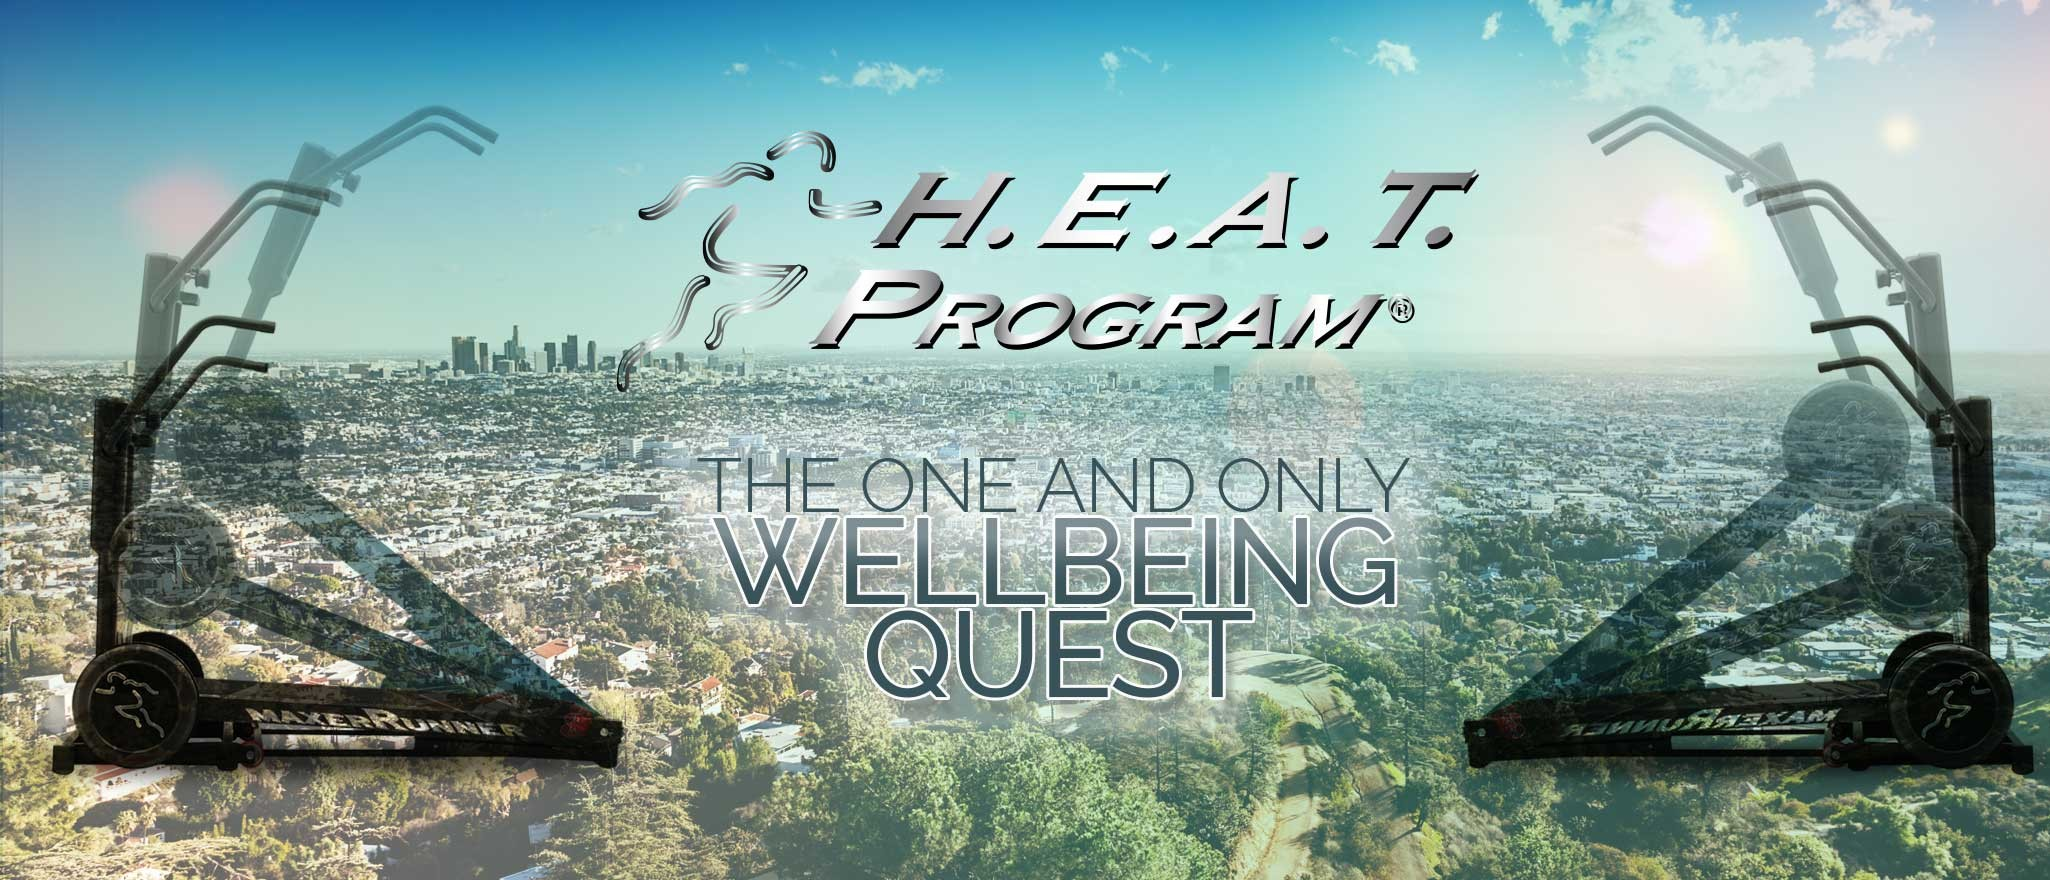 Wellbeing quest